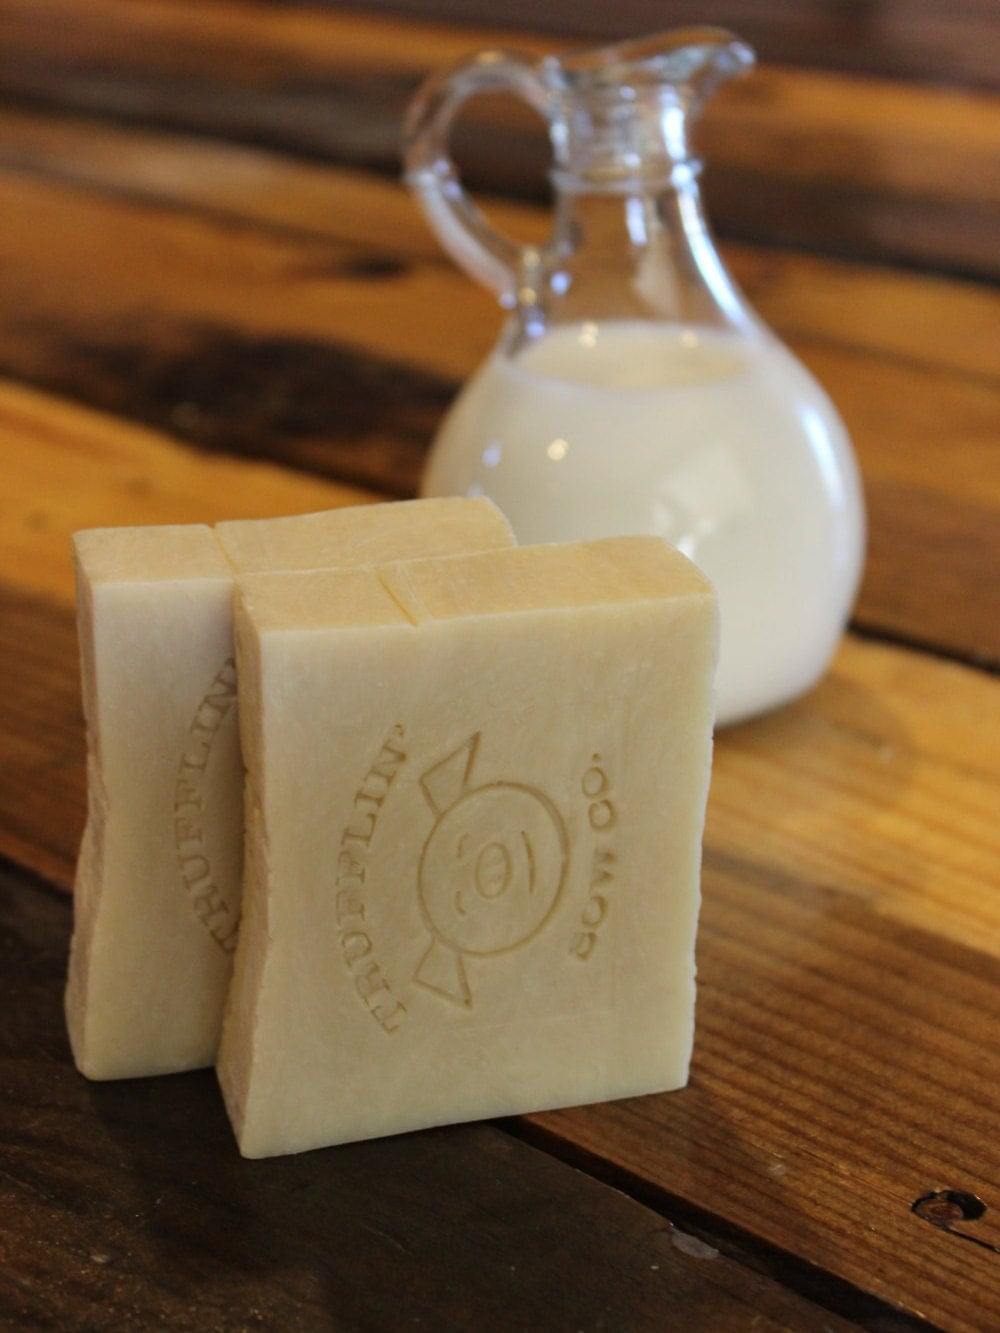 Goat Soap from Trufflin' Sow on Etsy